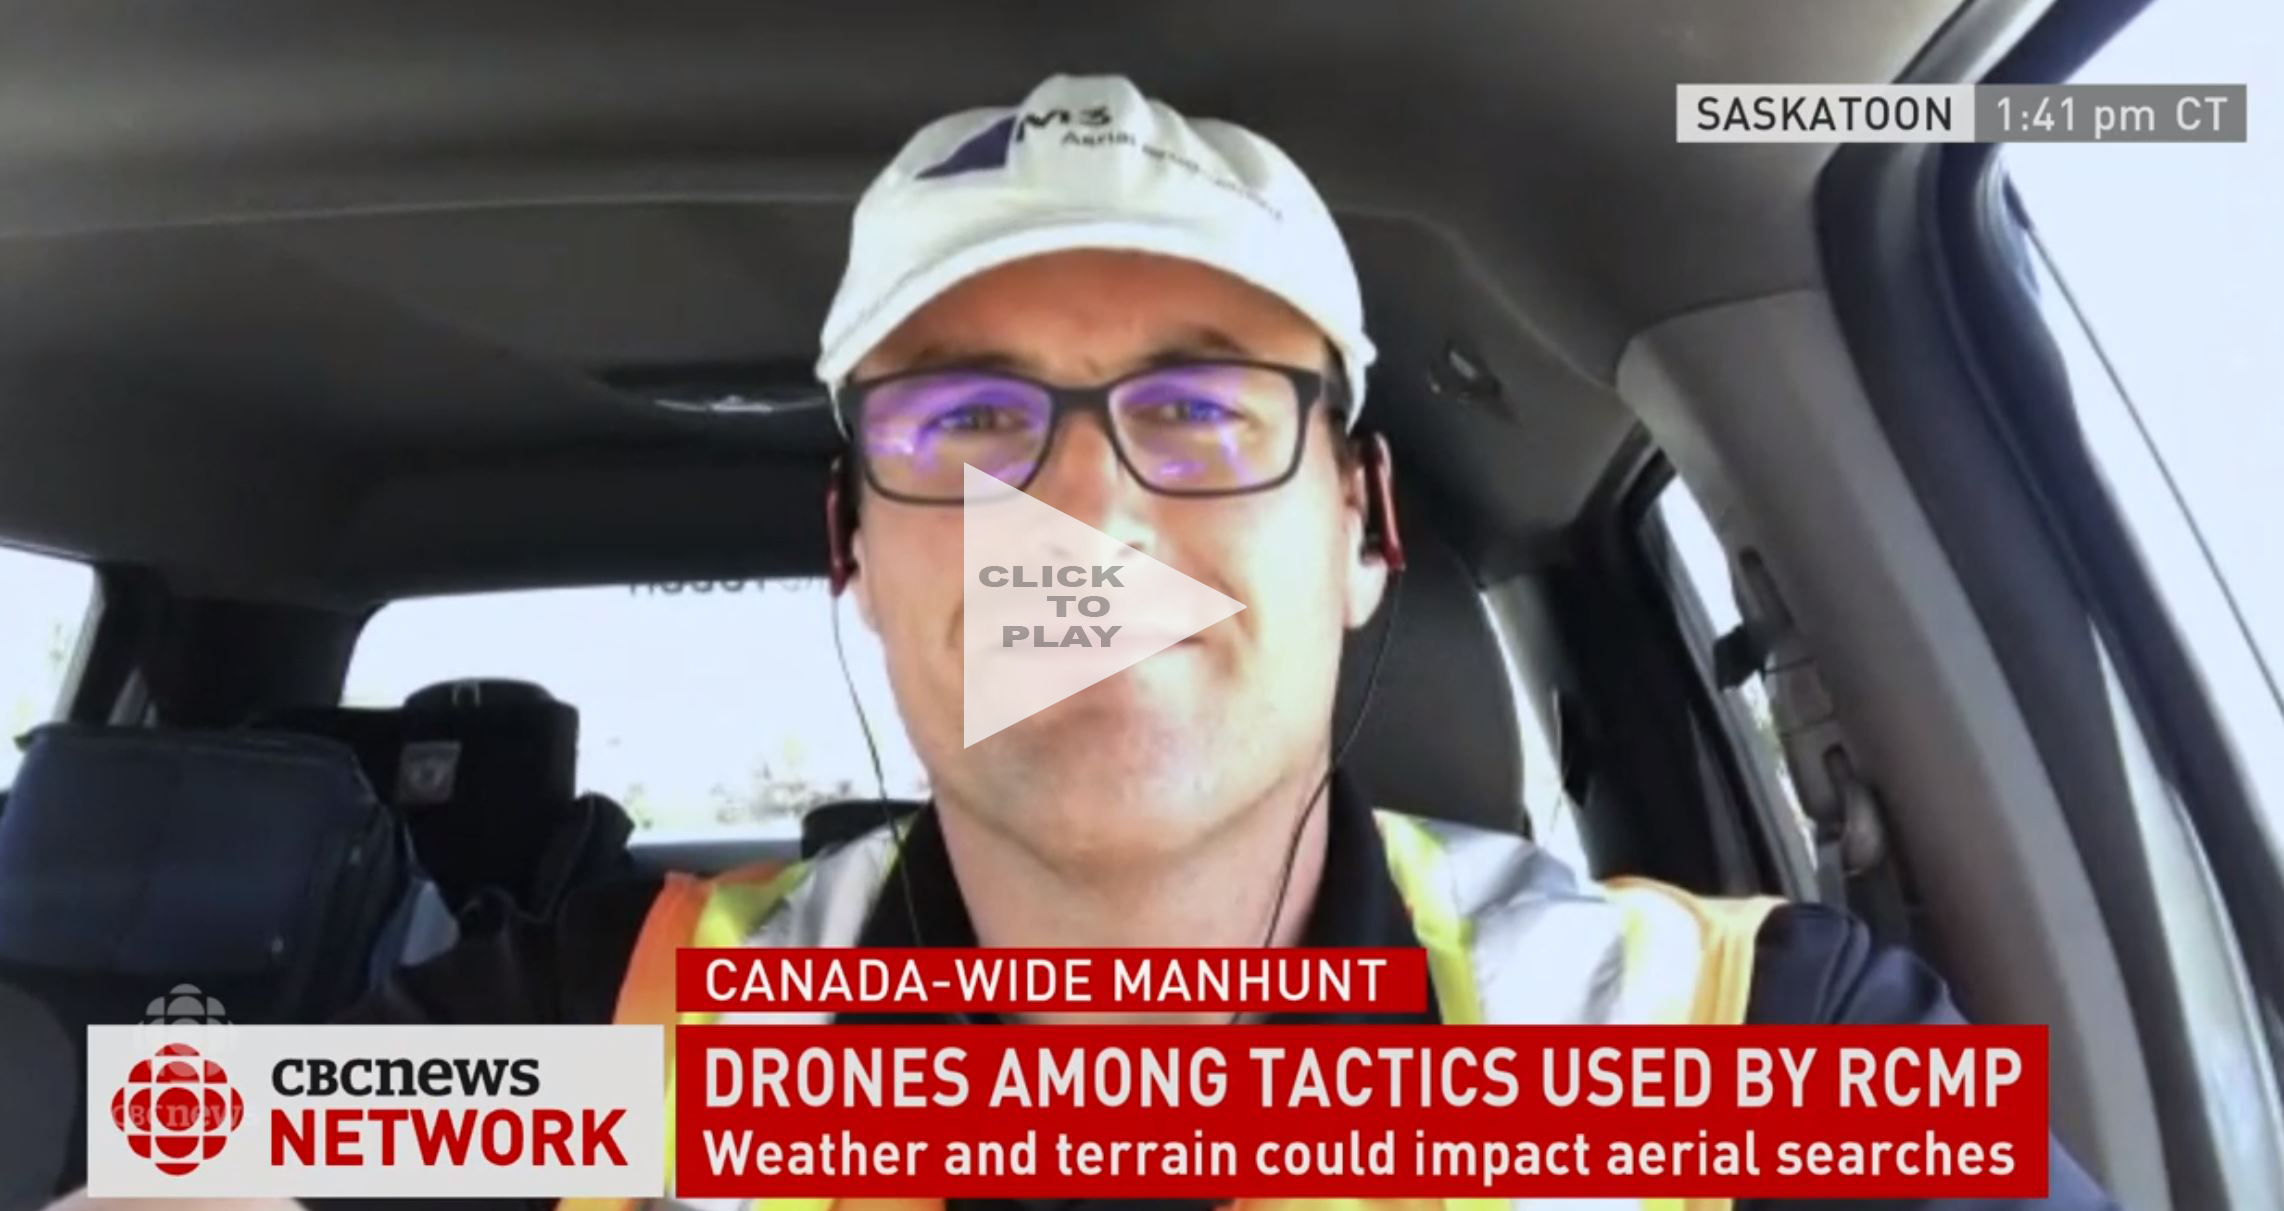 00 - CBC Manhunt Drones as Strategy Click to Play.jpg